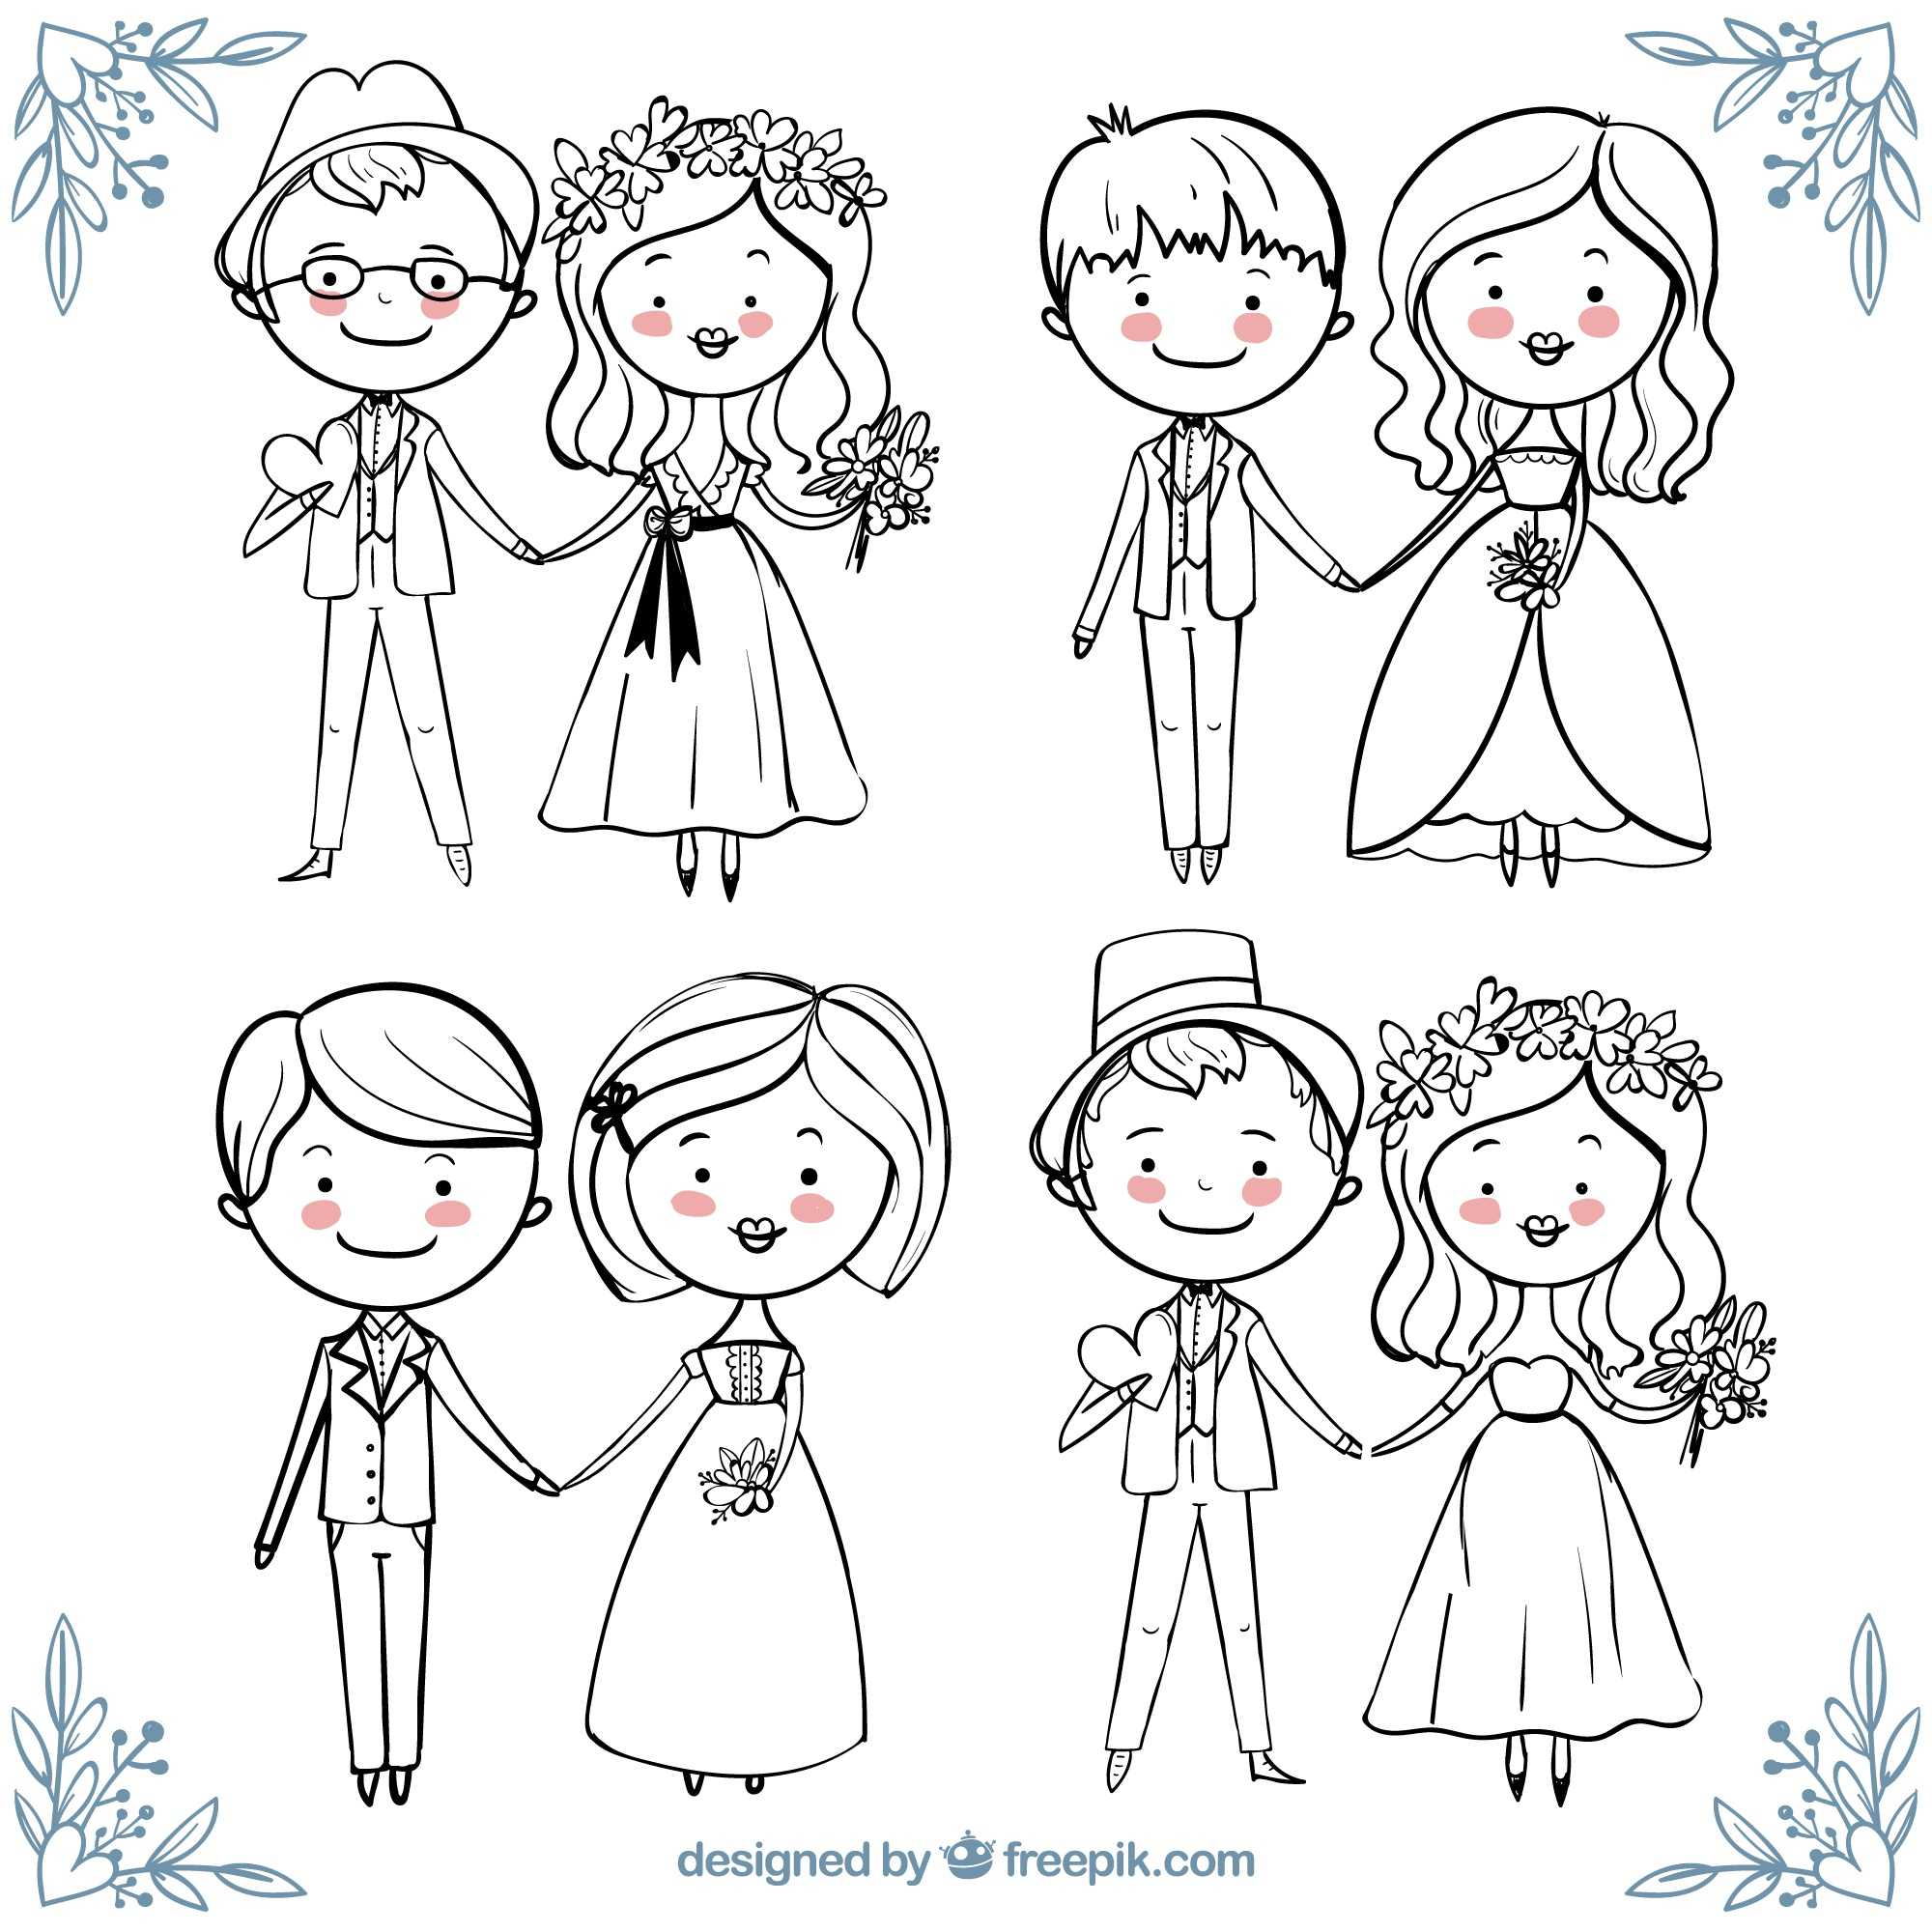 Beautiful collection of happy wedding couples in hand-drawn style